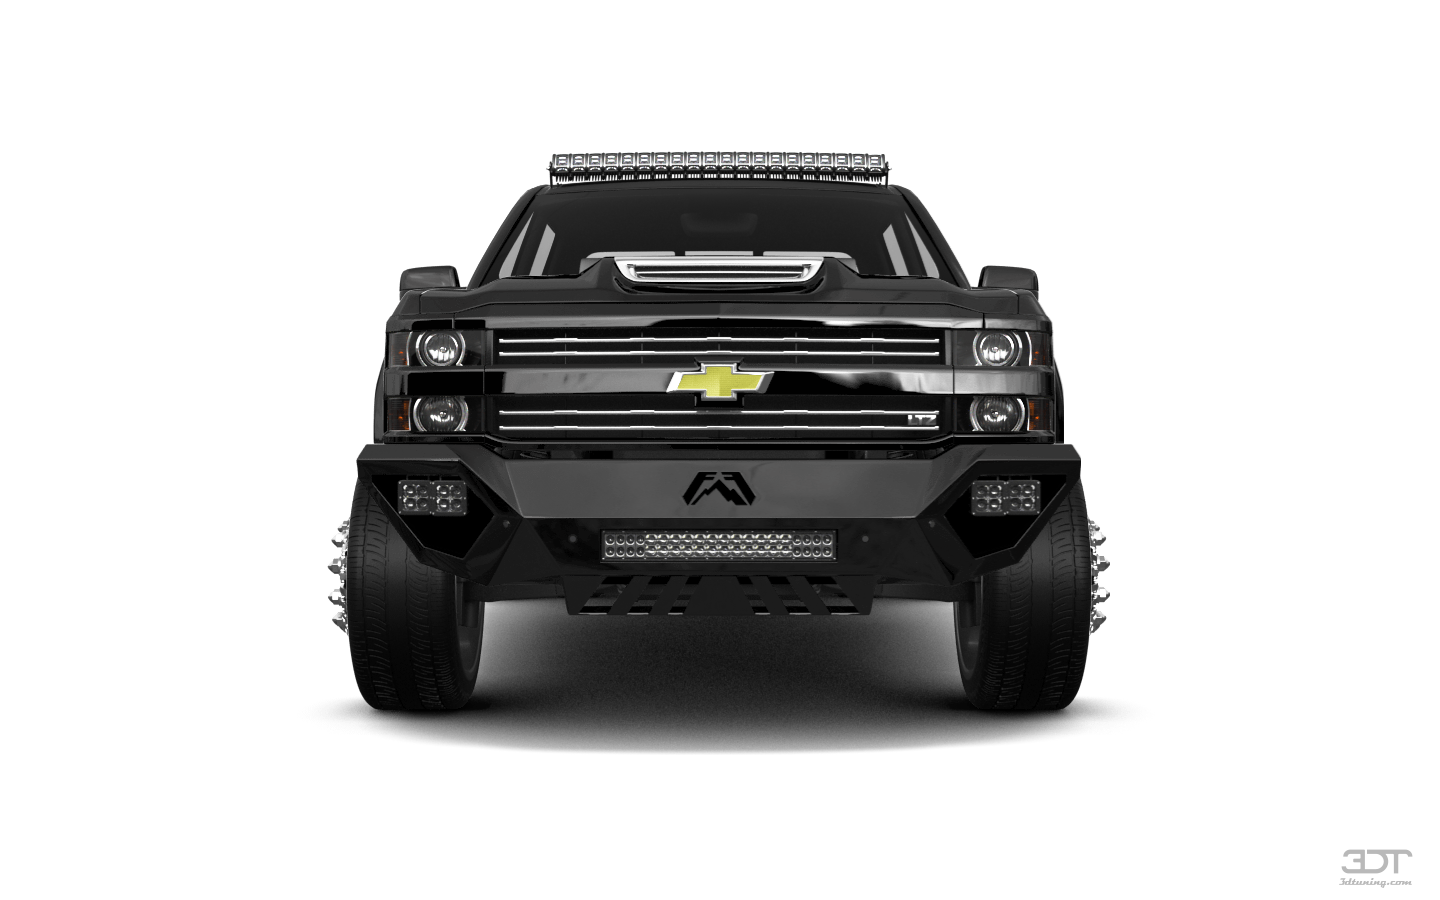 Chevrolet Silverado 3500 4 Door pickup truck 2015